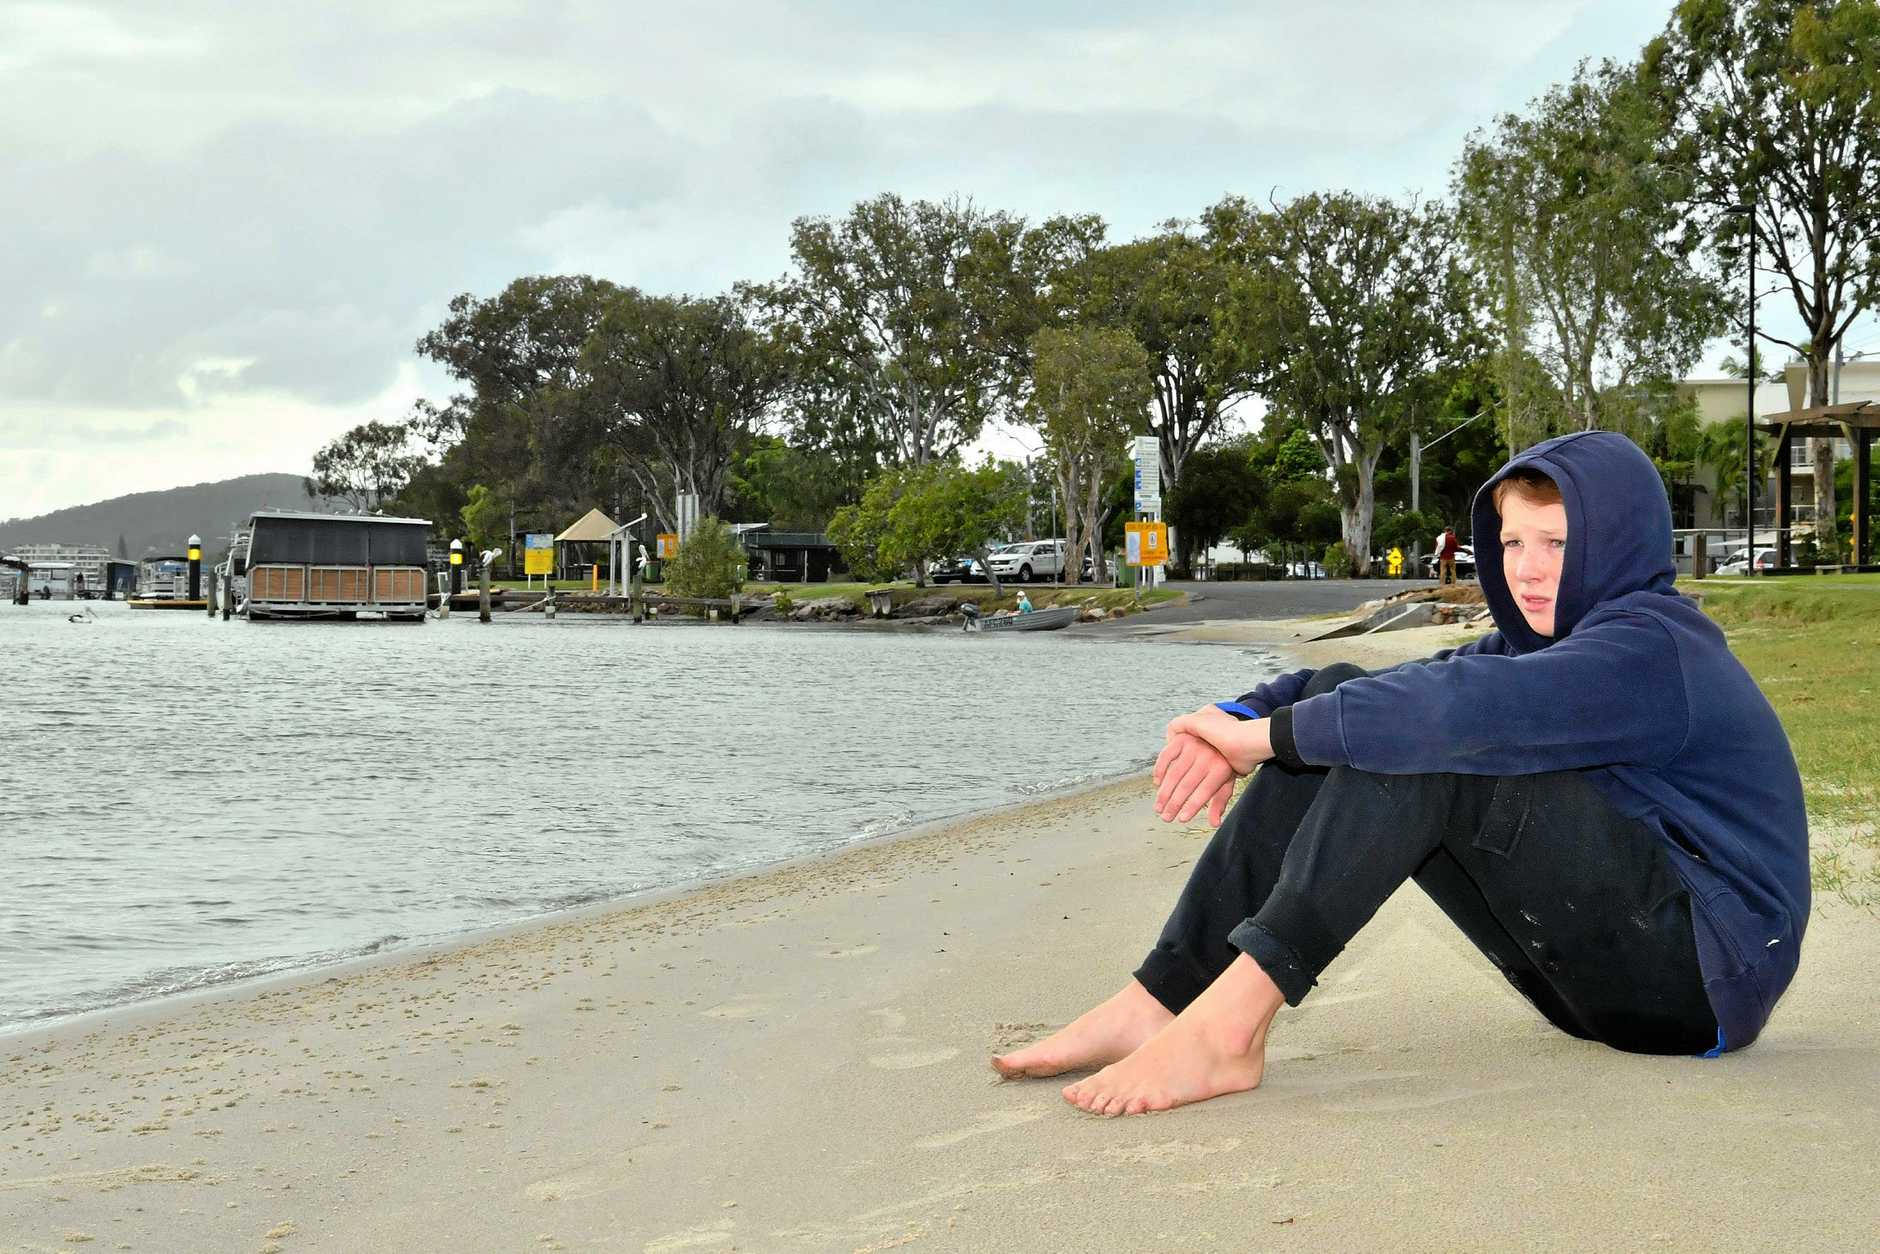 UPSET BOY: Angus Campbell, 14, sits along on Gympie Terrace where his tinnie was stolen.